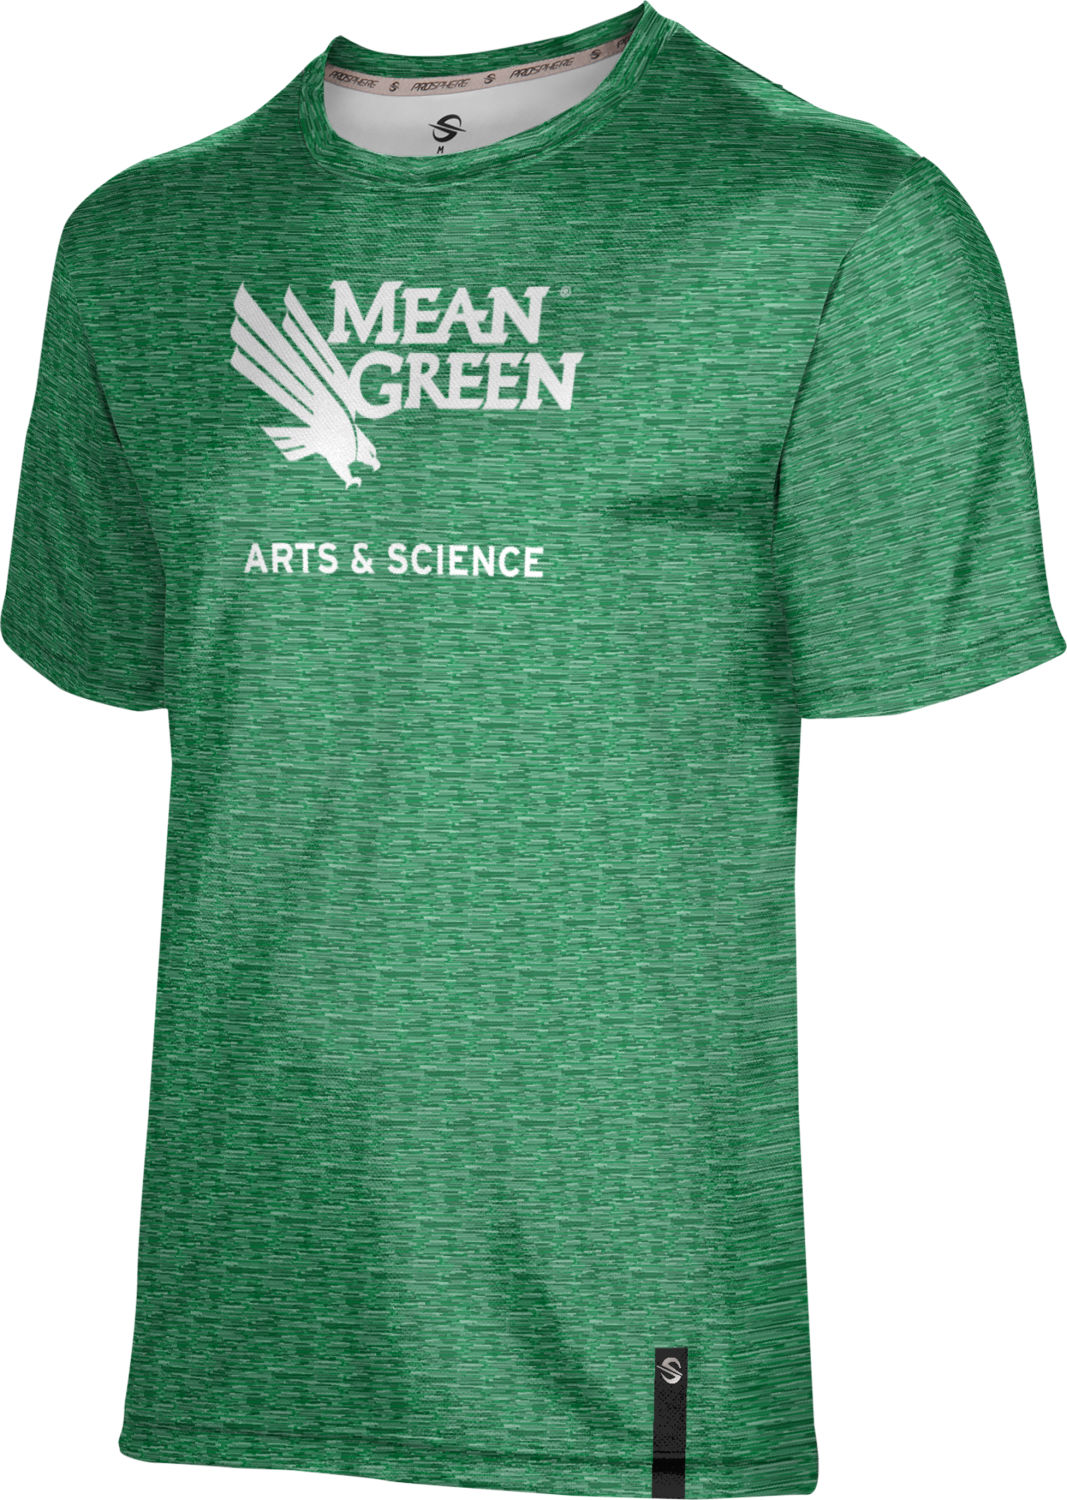 Boy's ProSphere Sublimated Tee - Arts & Science